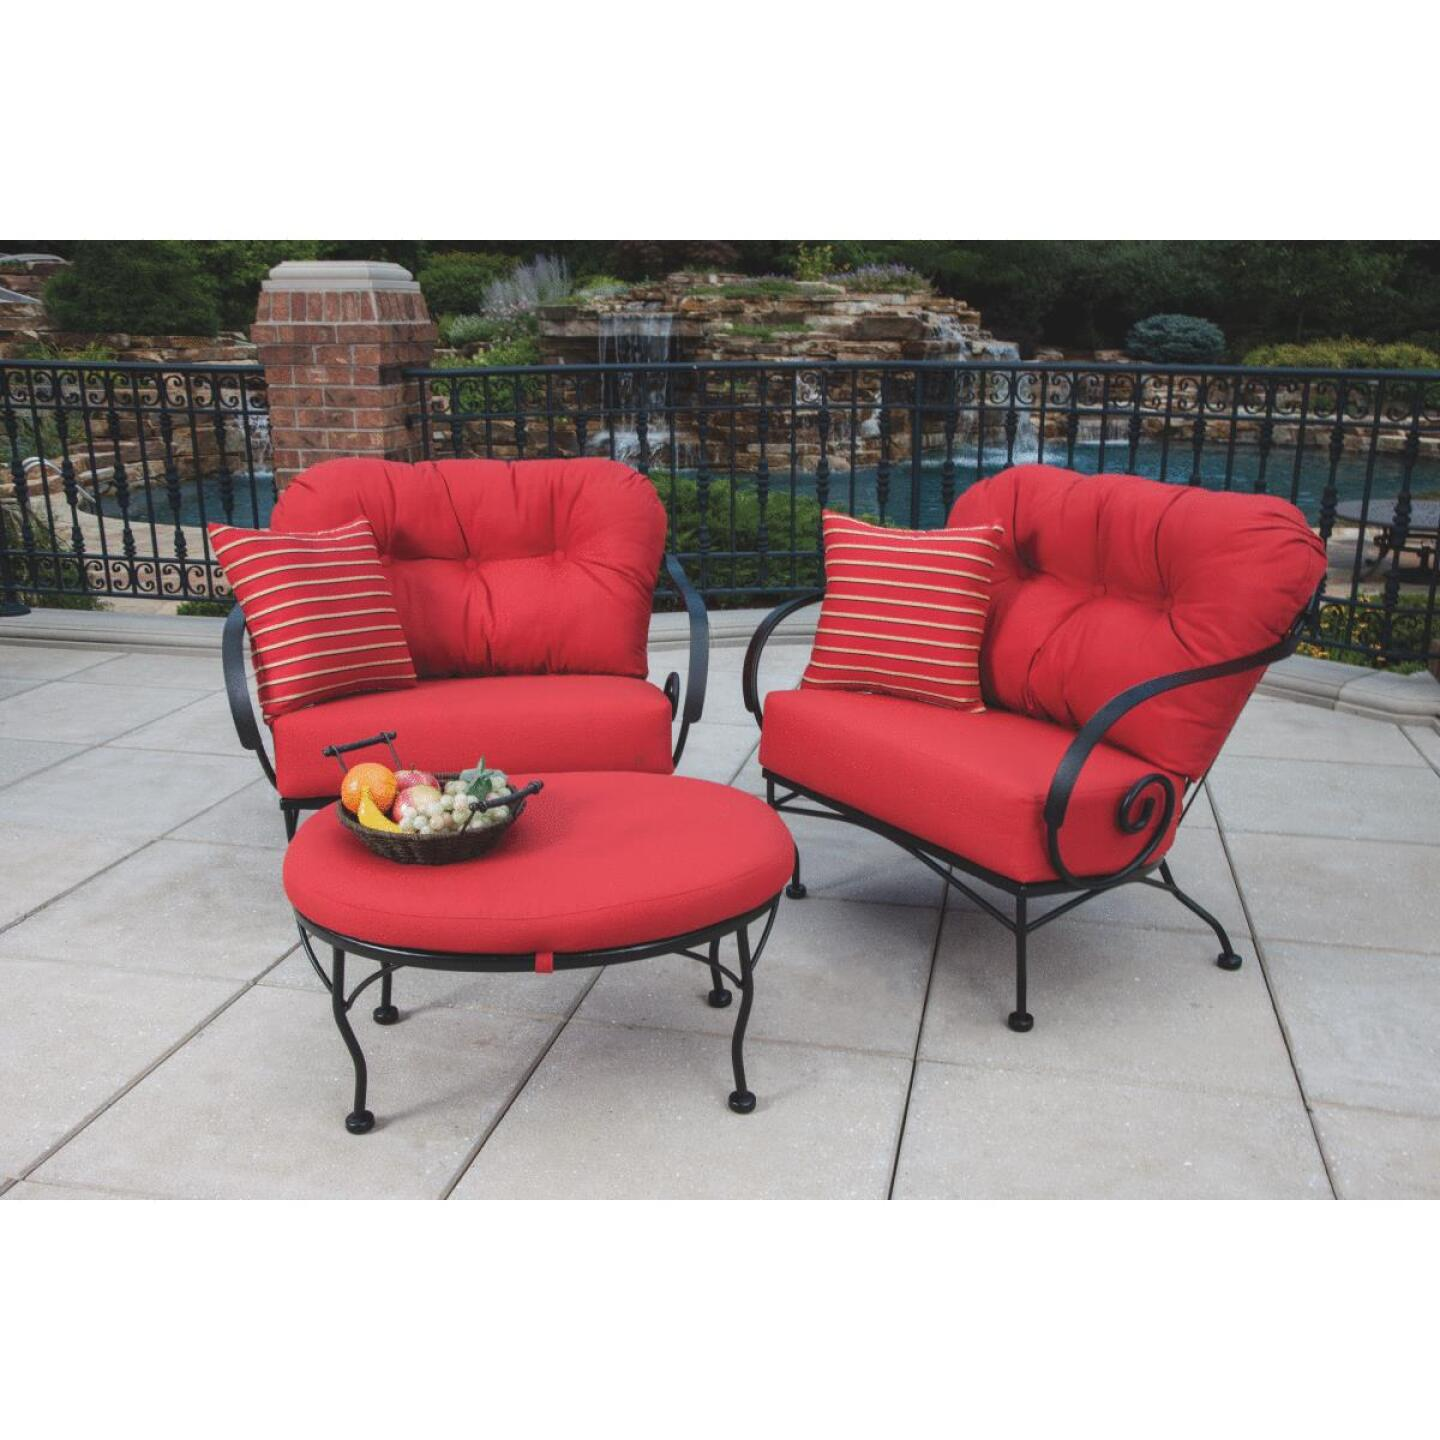 Brantley 3-Piece Steel Chat Set with Red Cushions Image 5